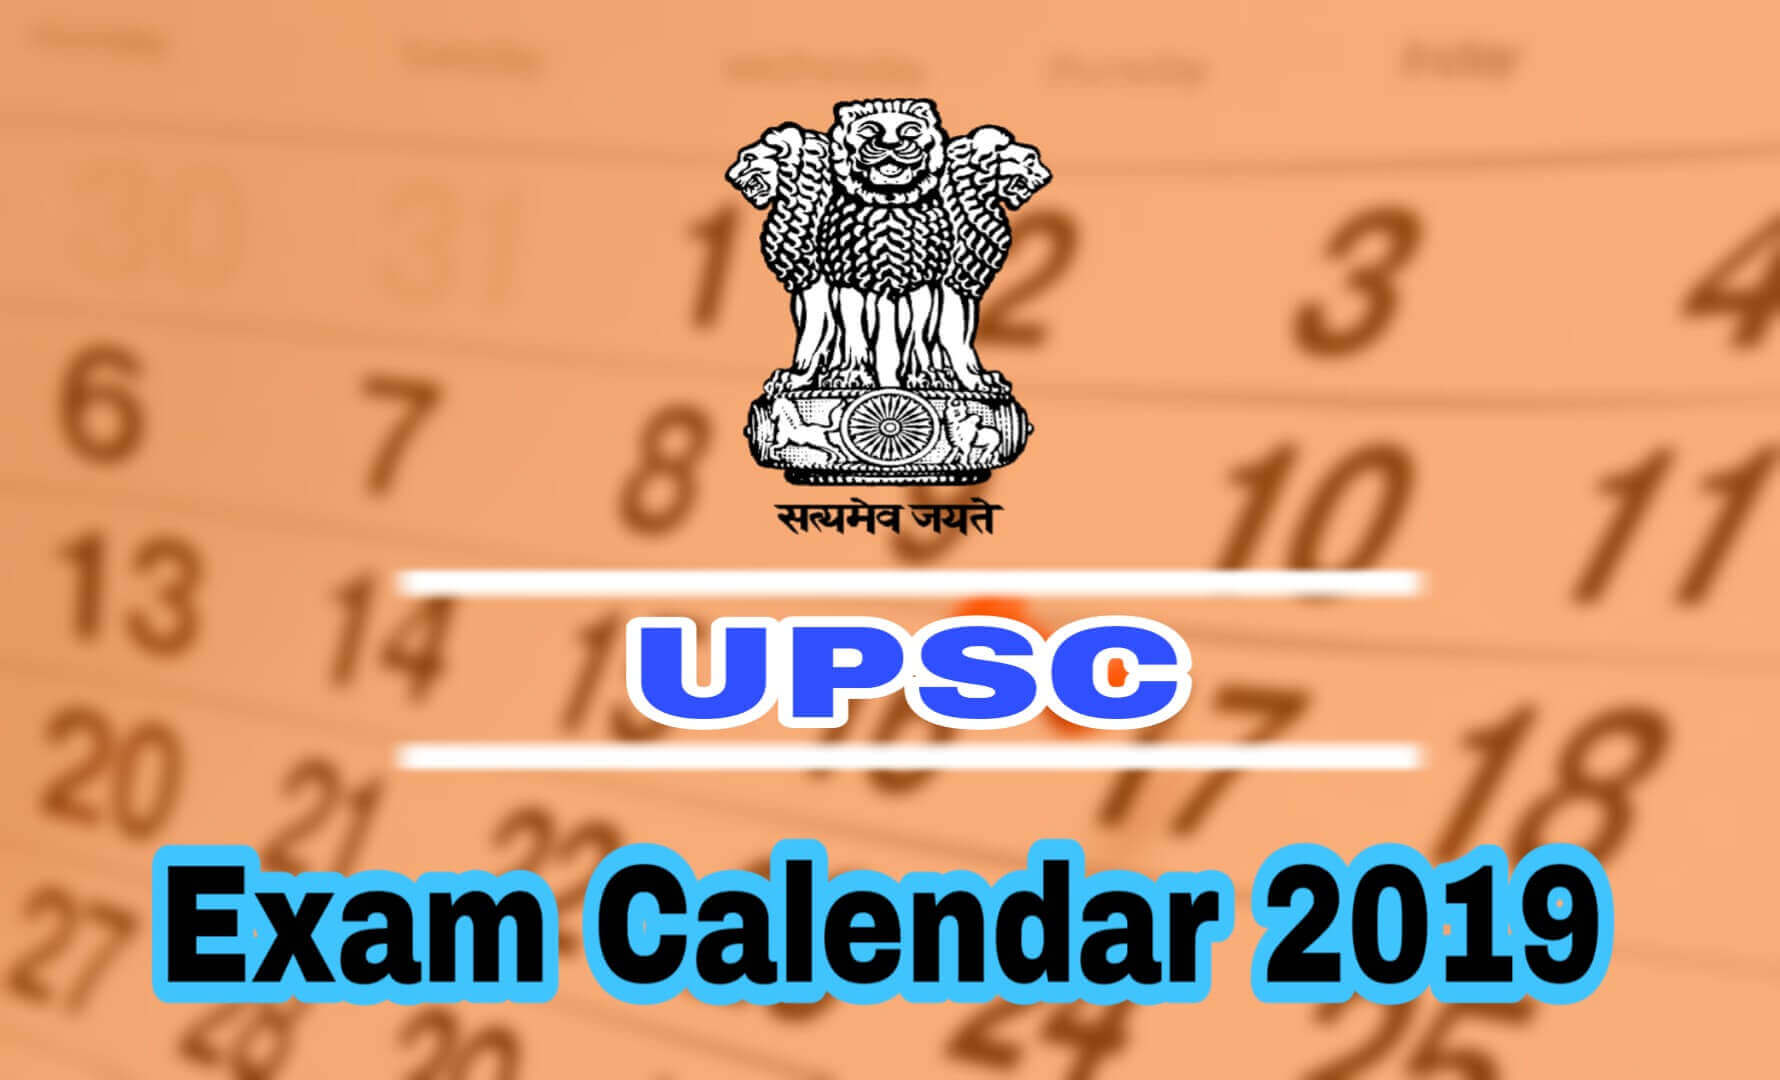 upsc exam calendar 2019 for all the exams conduct by upsc